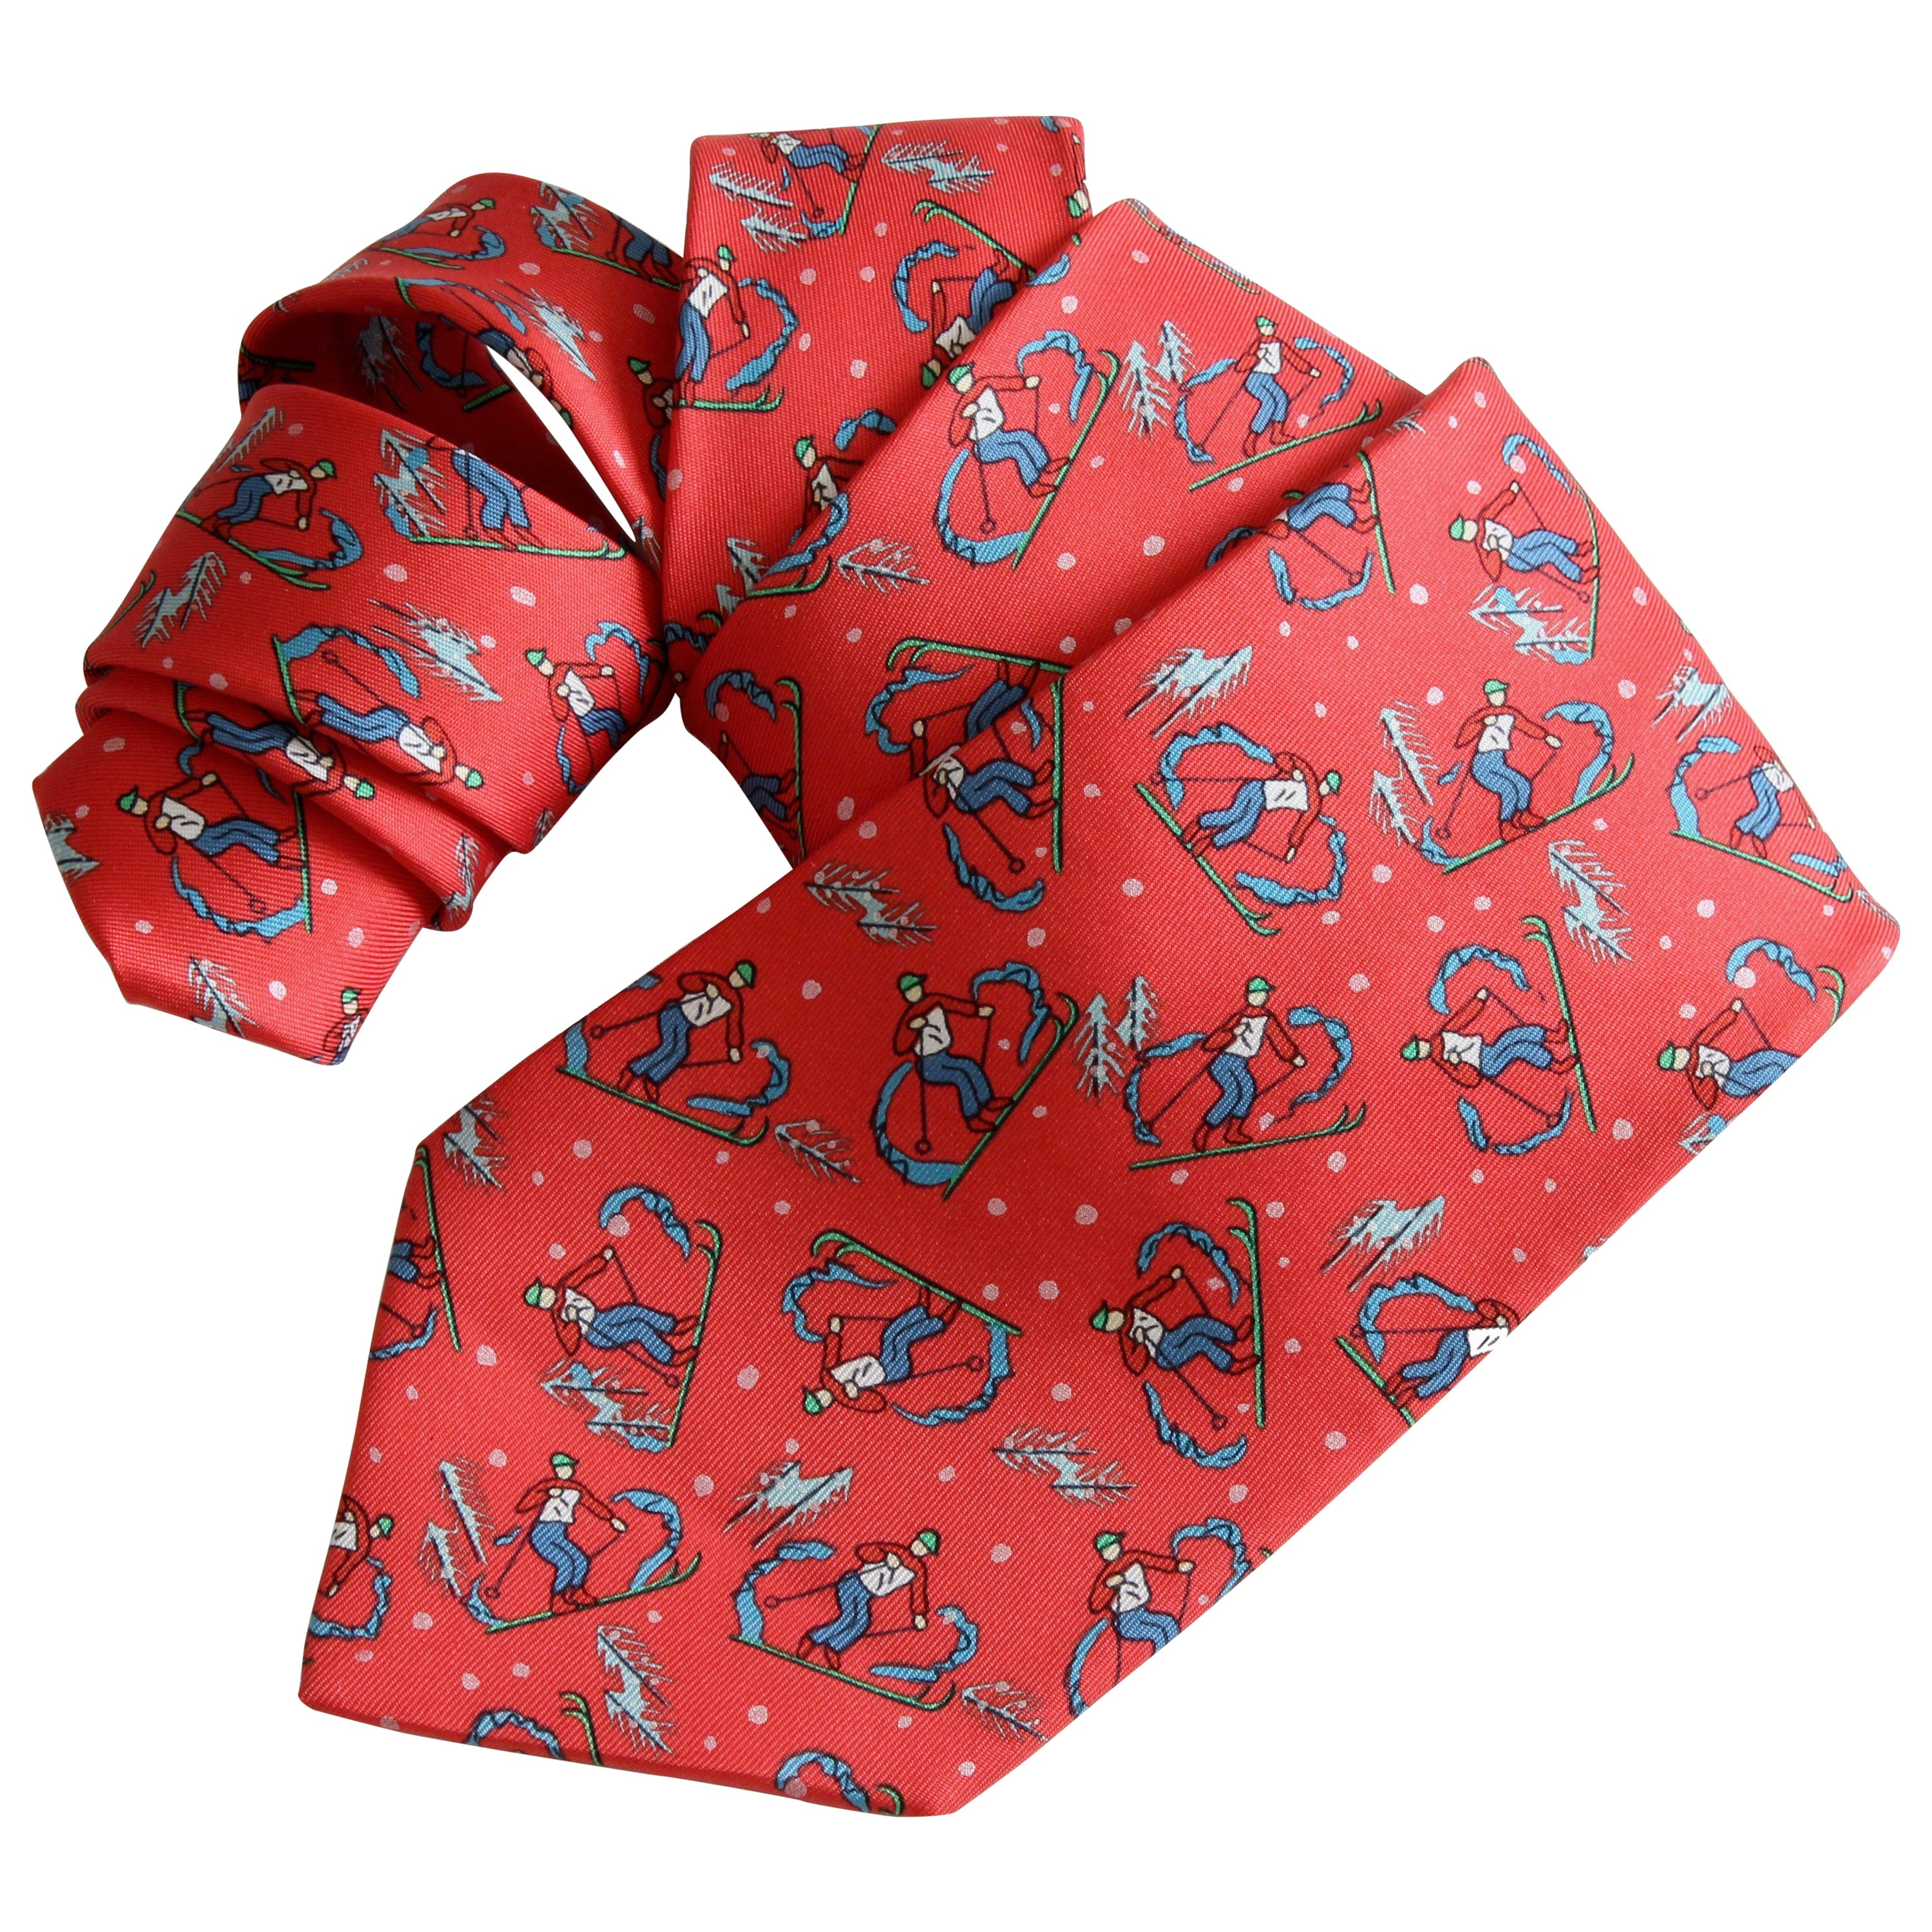 60c754327fe4 Rare Hermes Necktie Mens Downhill Skiers Red Silk Twill 7601 SA Made in  France at 1stdibs